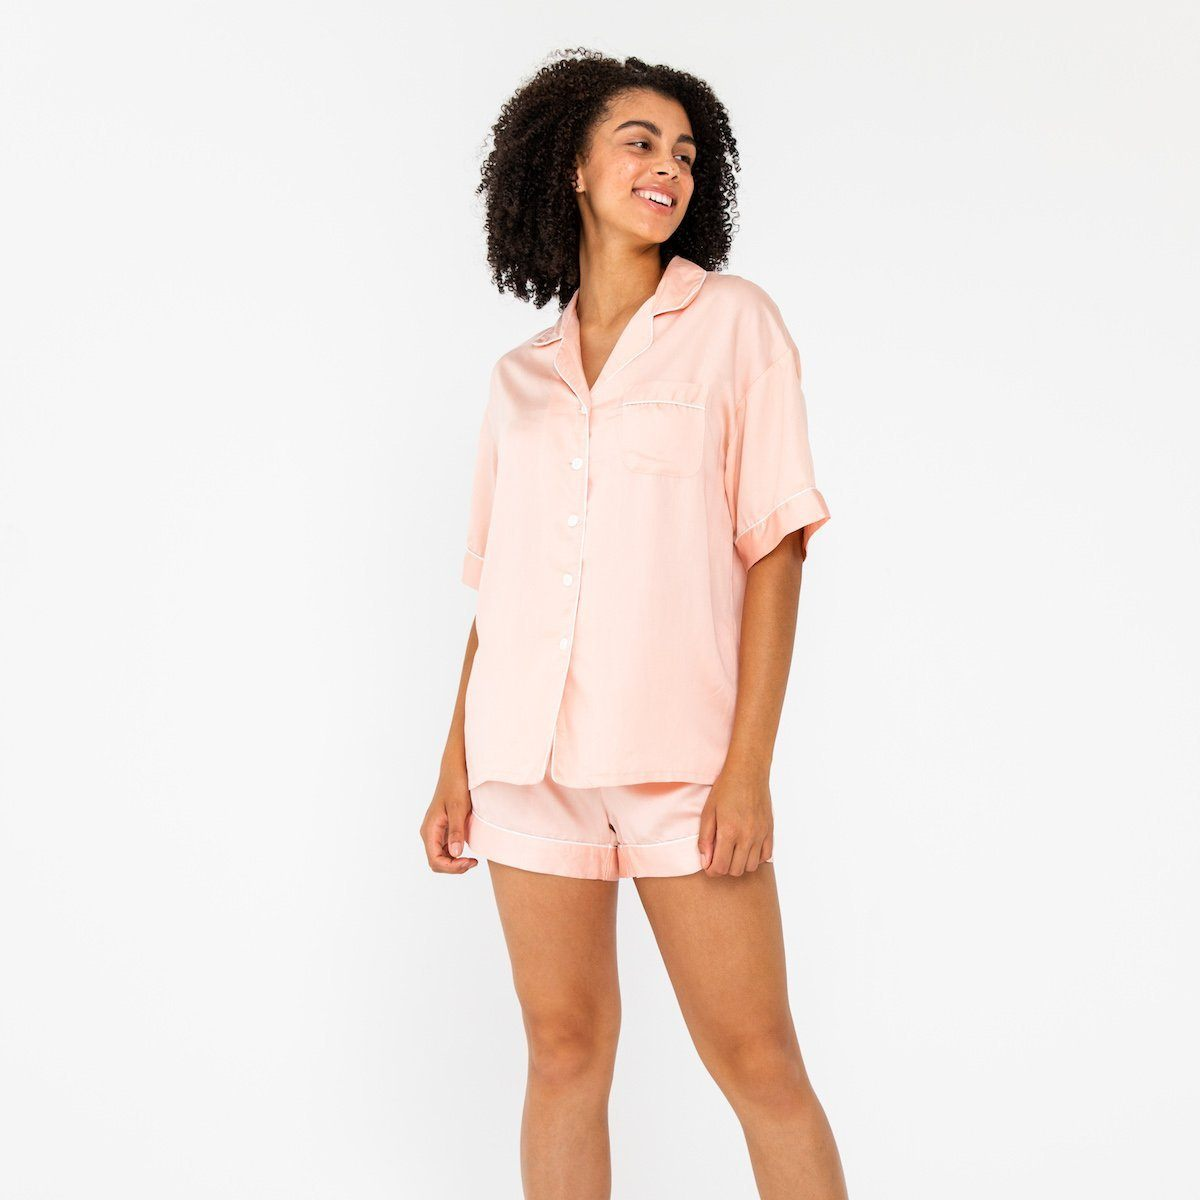 Ettitude Bamboo Lyocell Short Sleeve PJ Shirt - Cloud Pink Clothing Ettitude